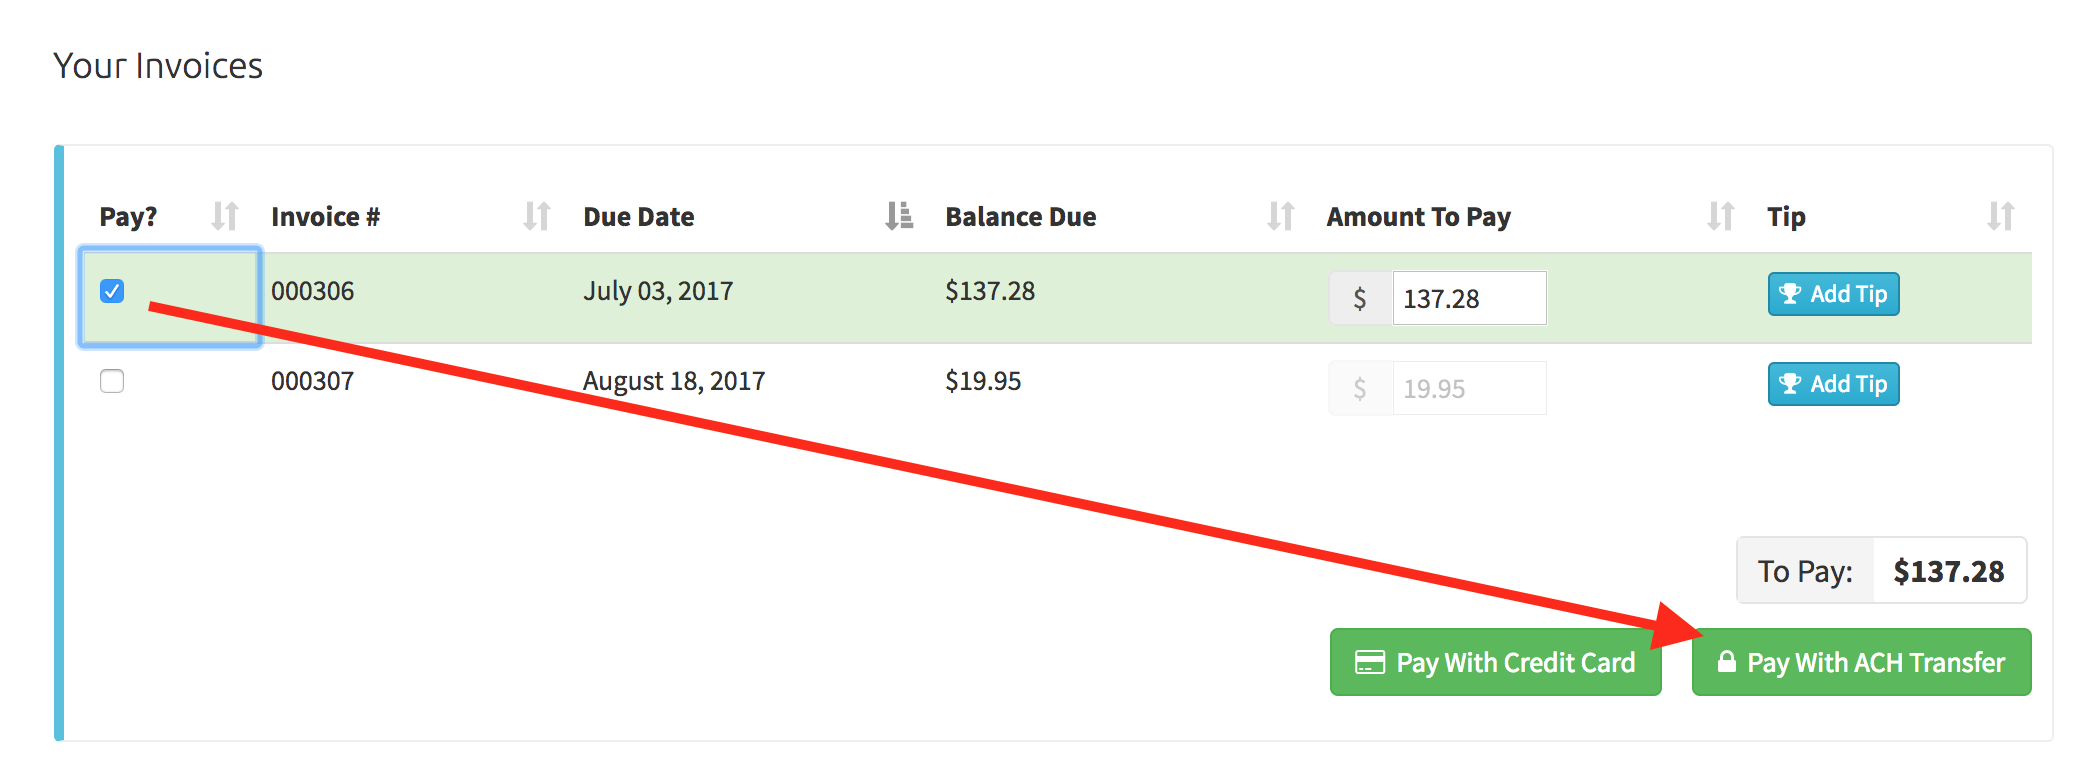 """View of the """"Pay With ACH Transfer"""" button in the client portal"""